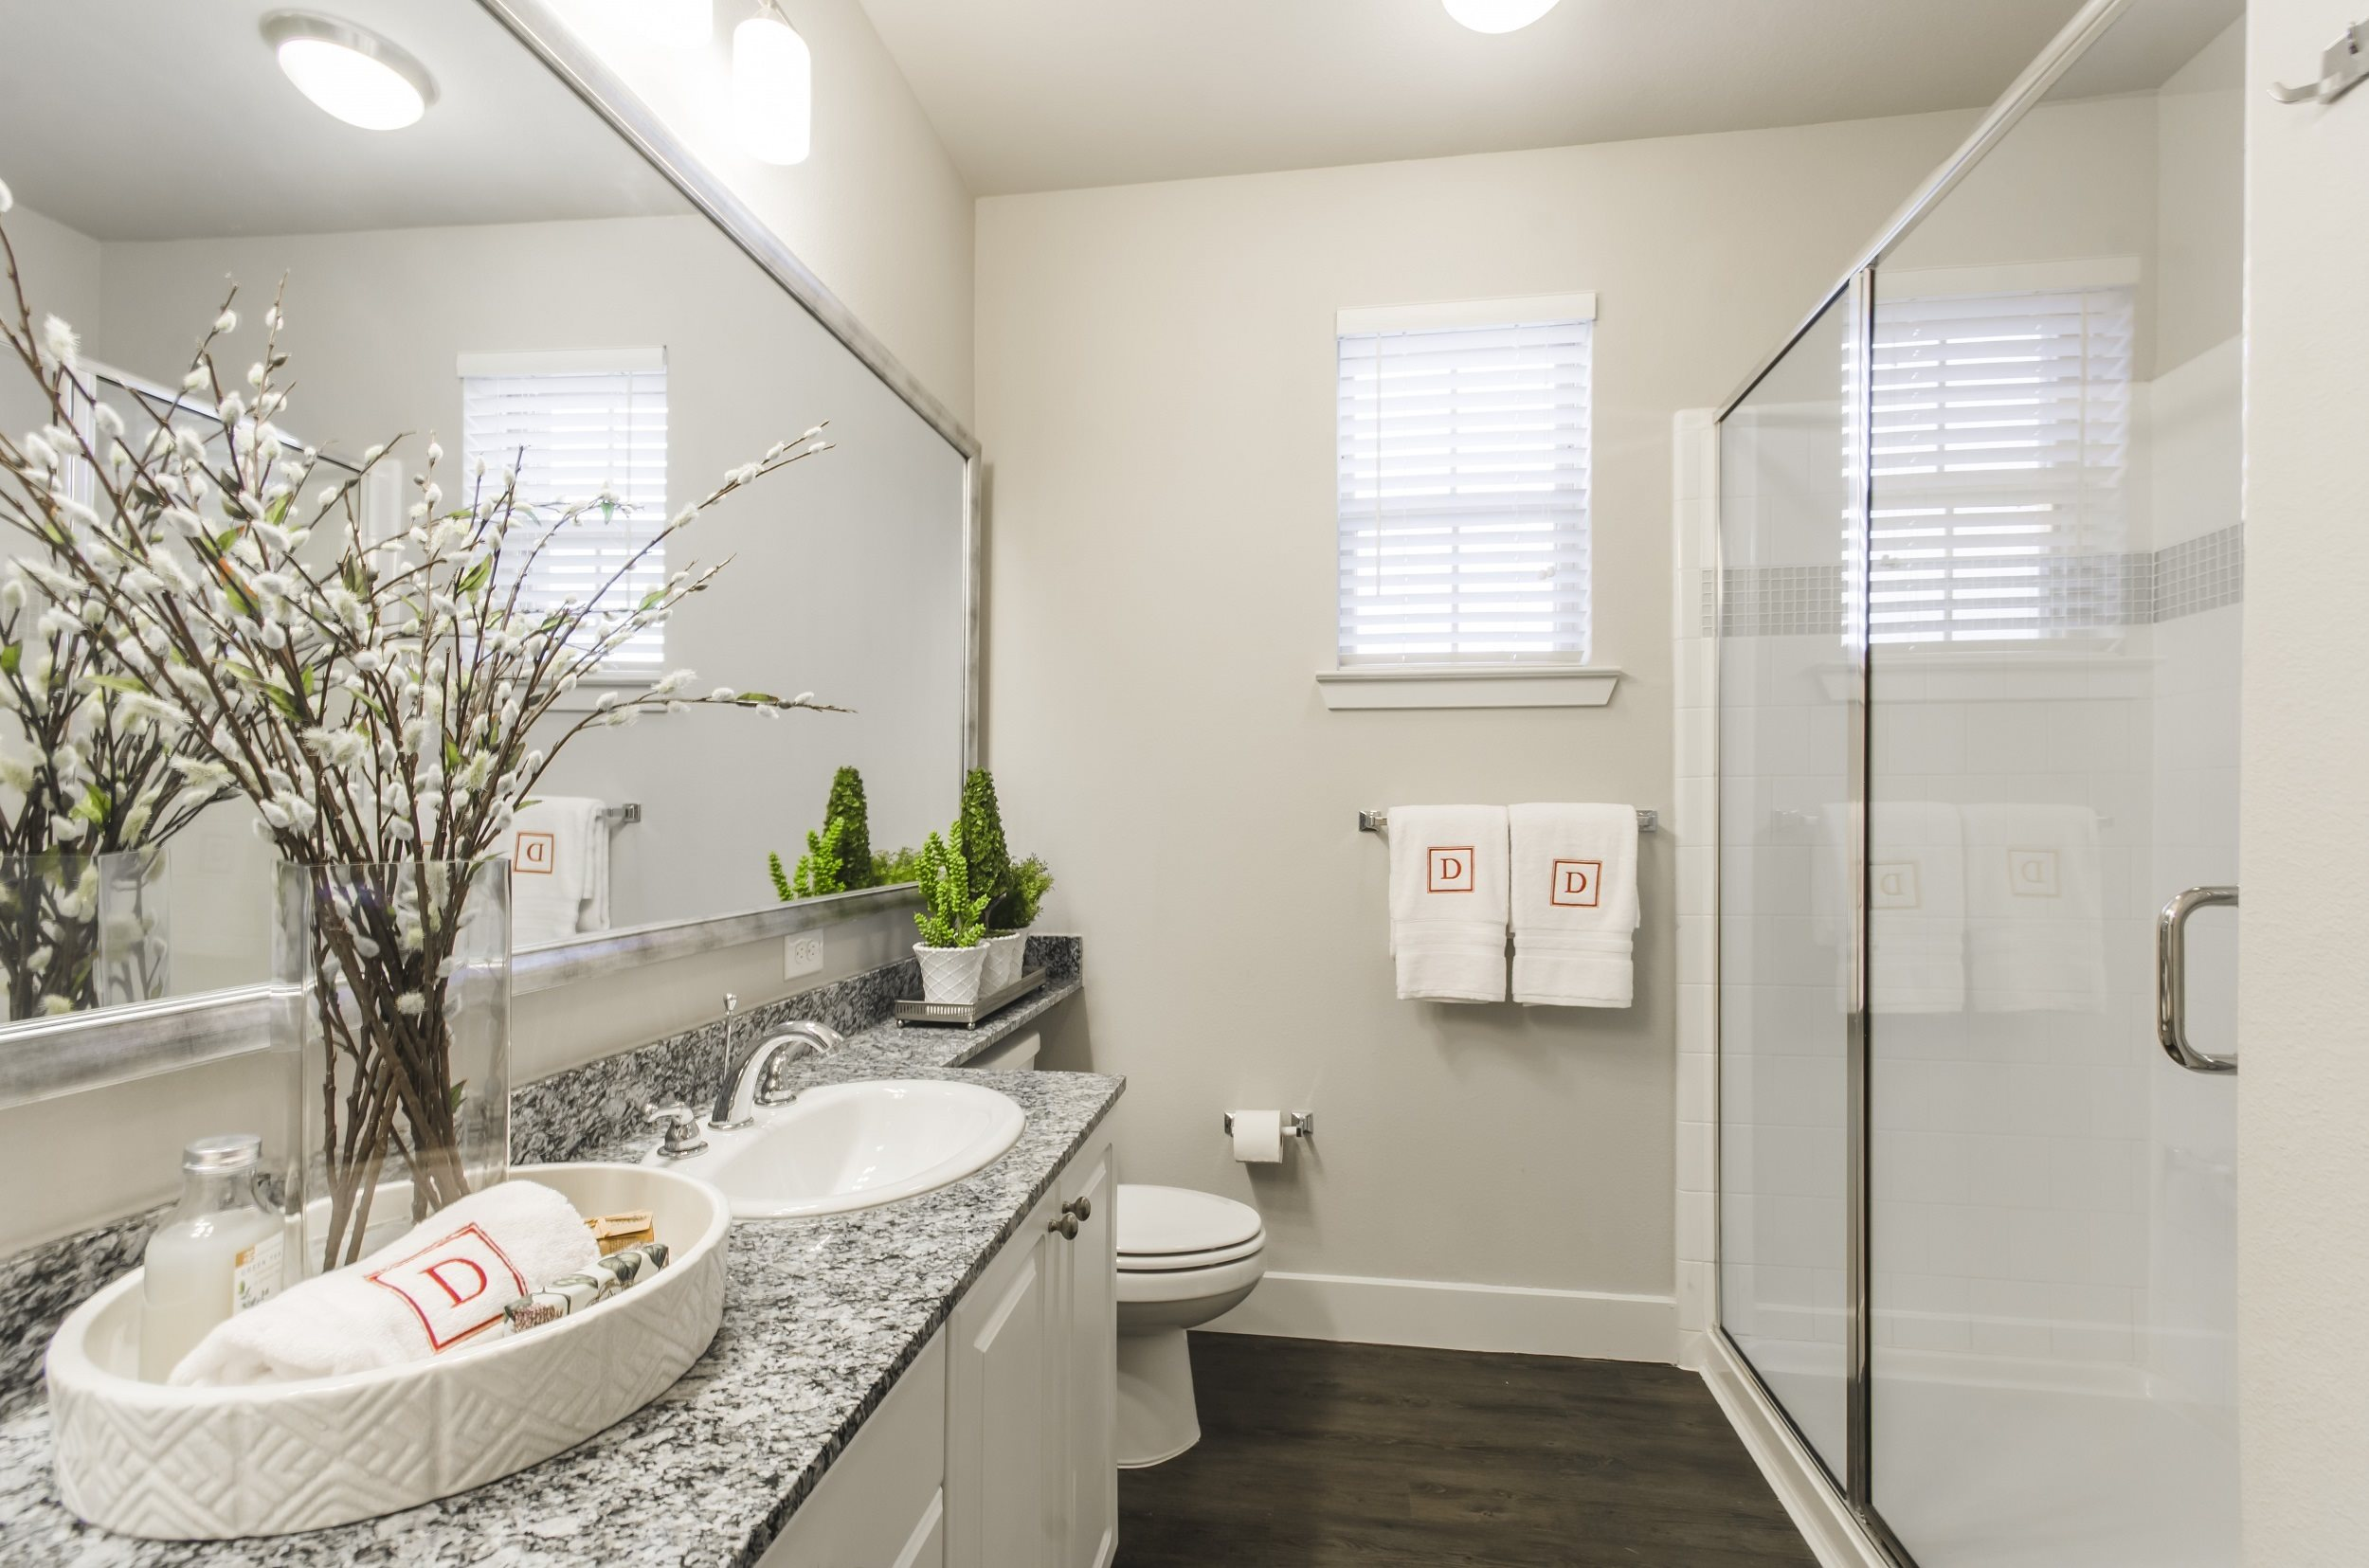 Double Sink Vanities at Touchstone Modern Apartment Homes, Broomfield, CO 80021